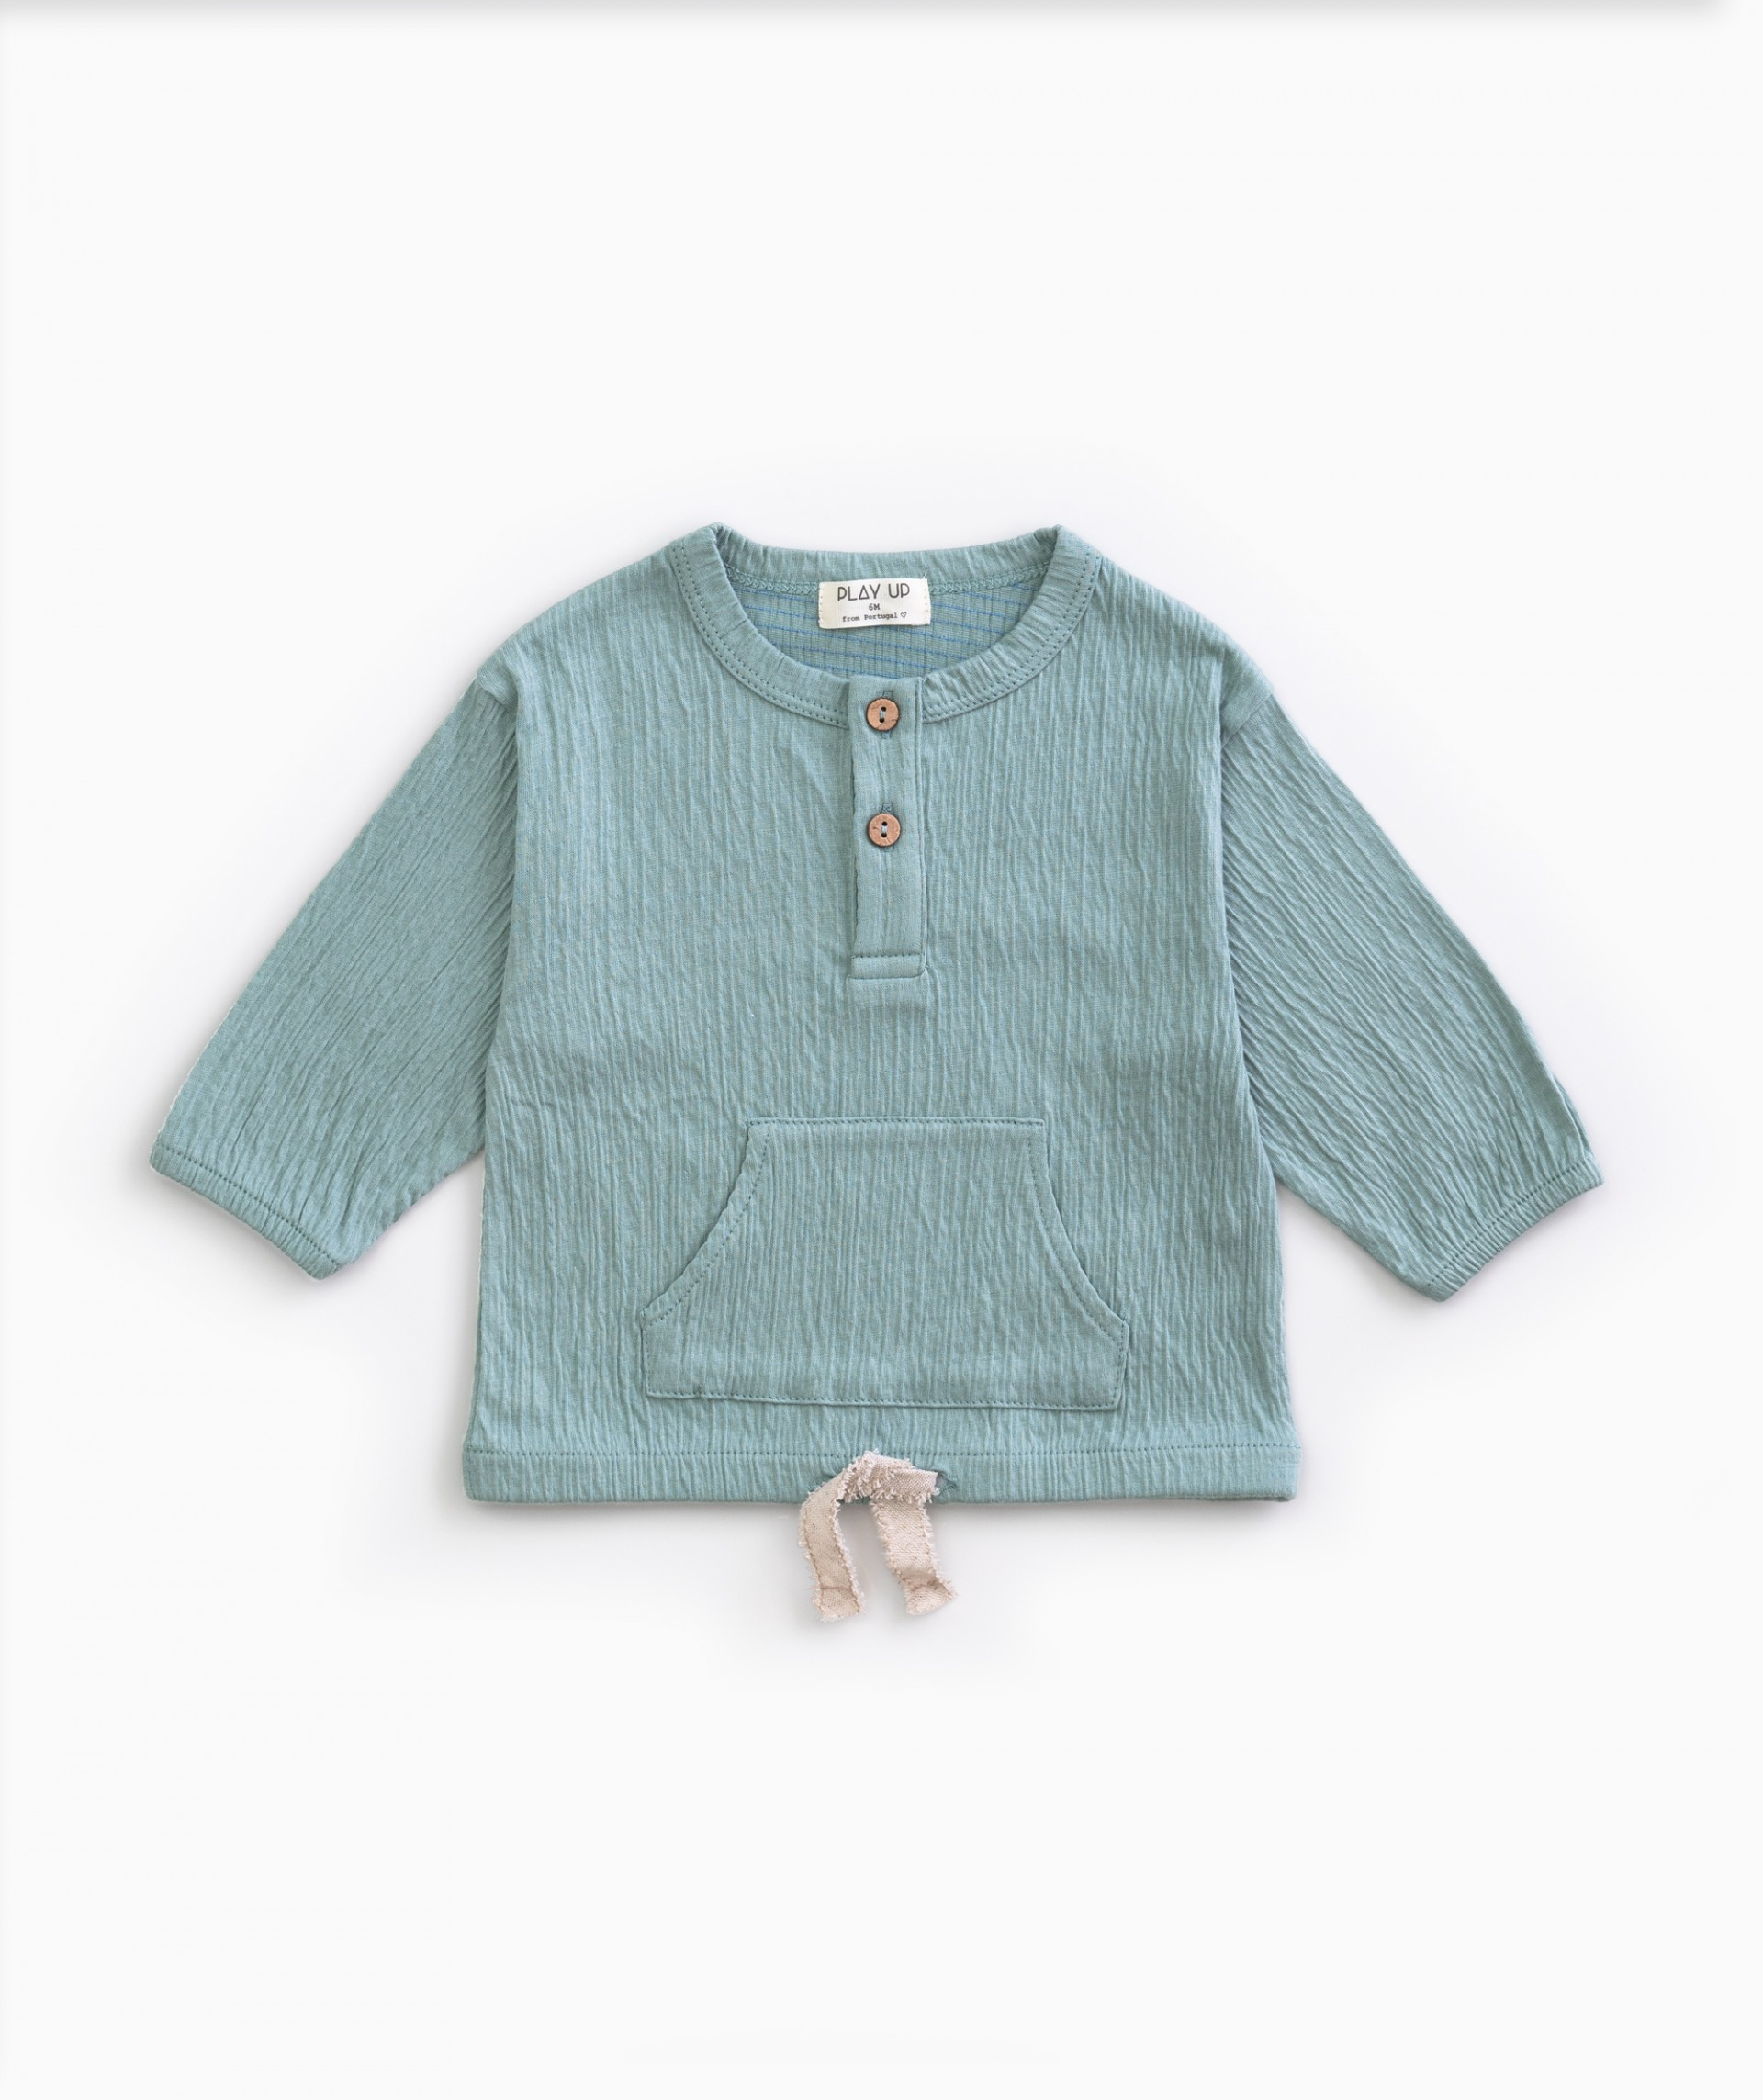 Shirt with pocket | Weaving